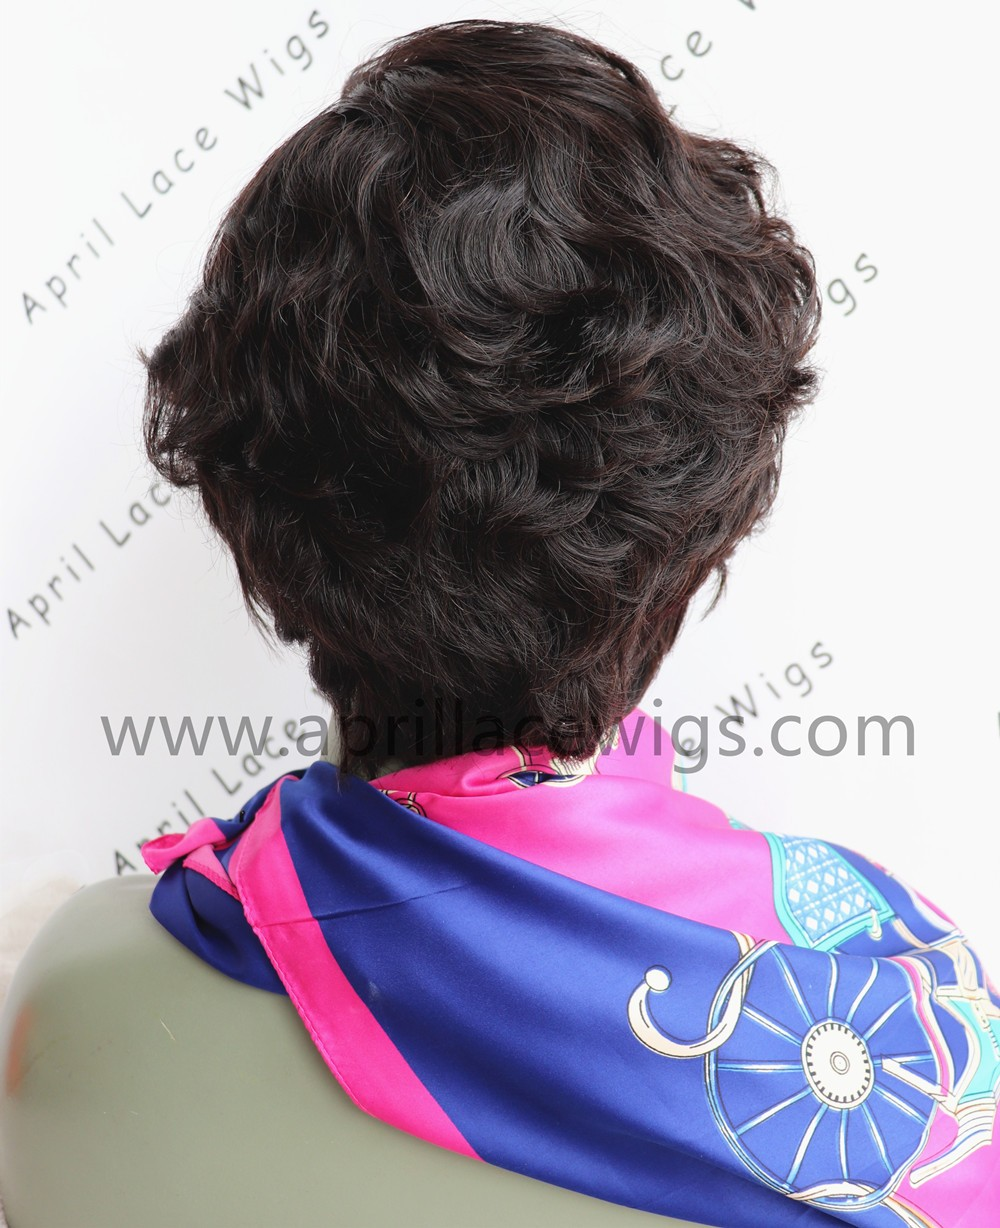 Virgin hair short cut glueless 13*6 lace front wig preplucked hairline